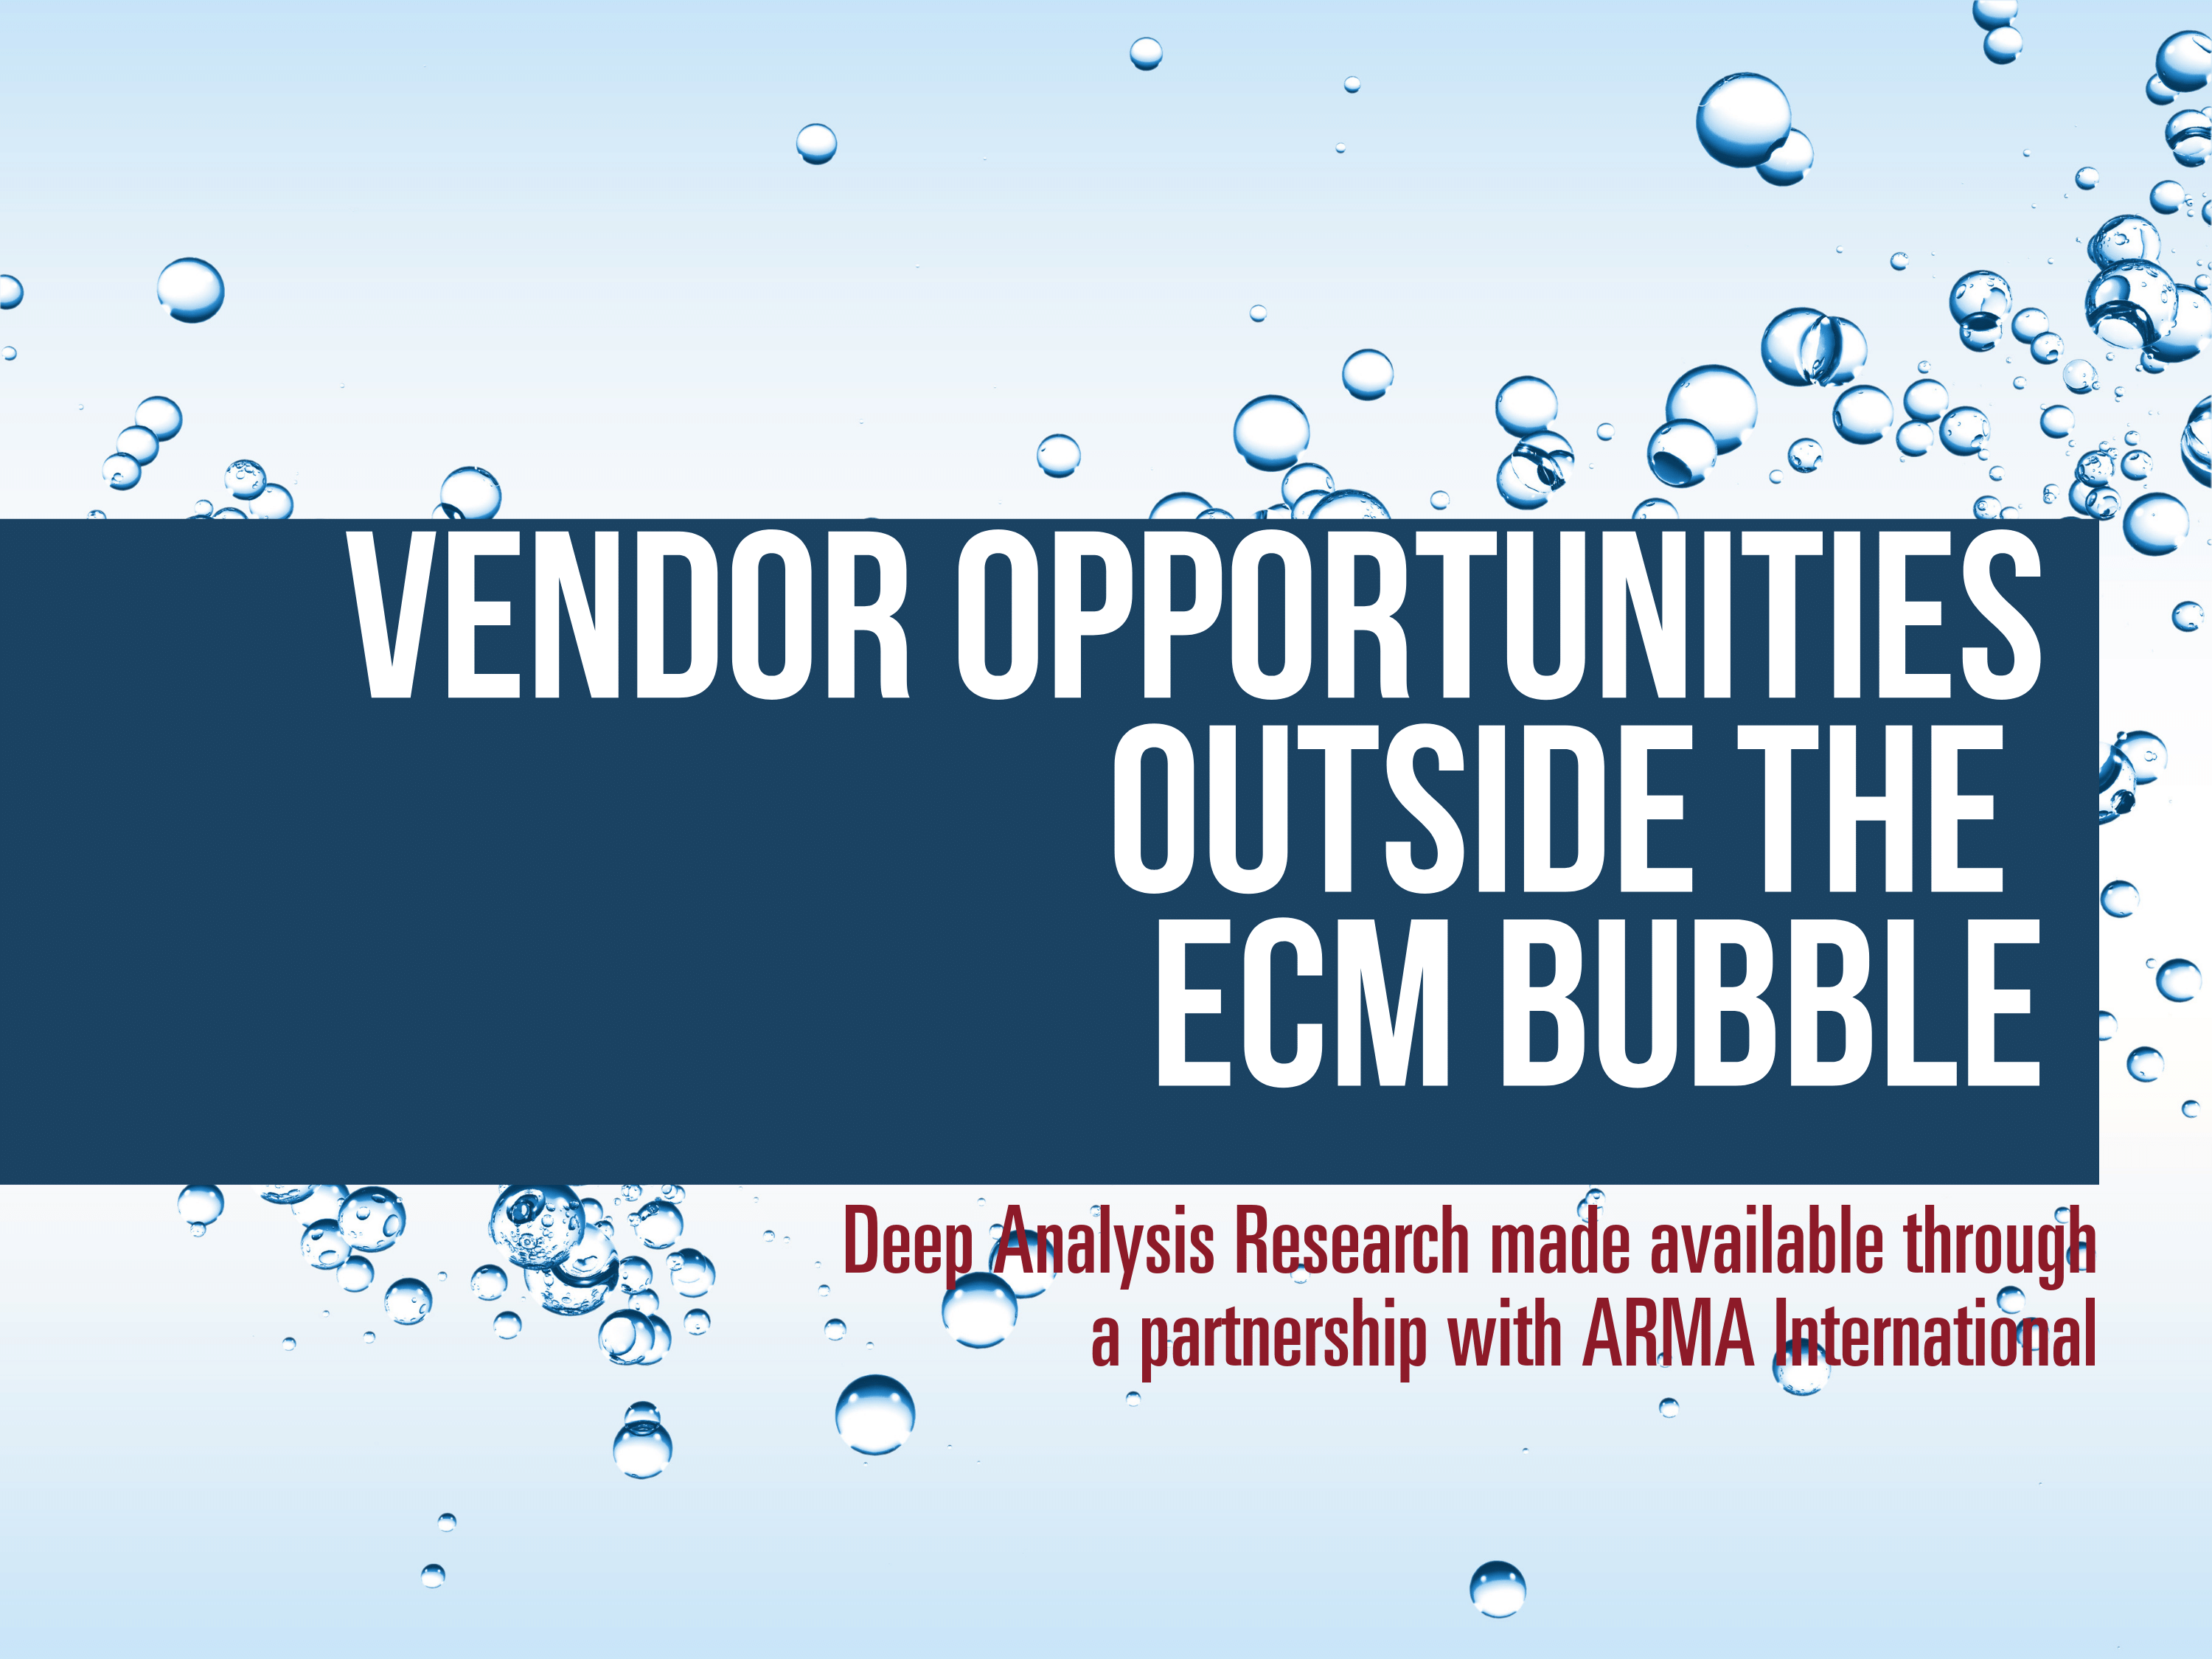 Vendor Opportunities Outside the ECM Bubble